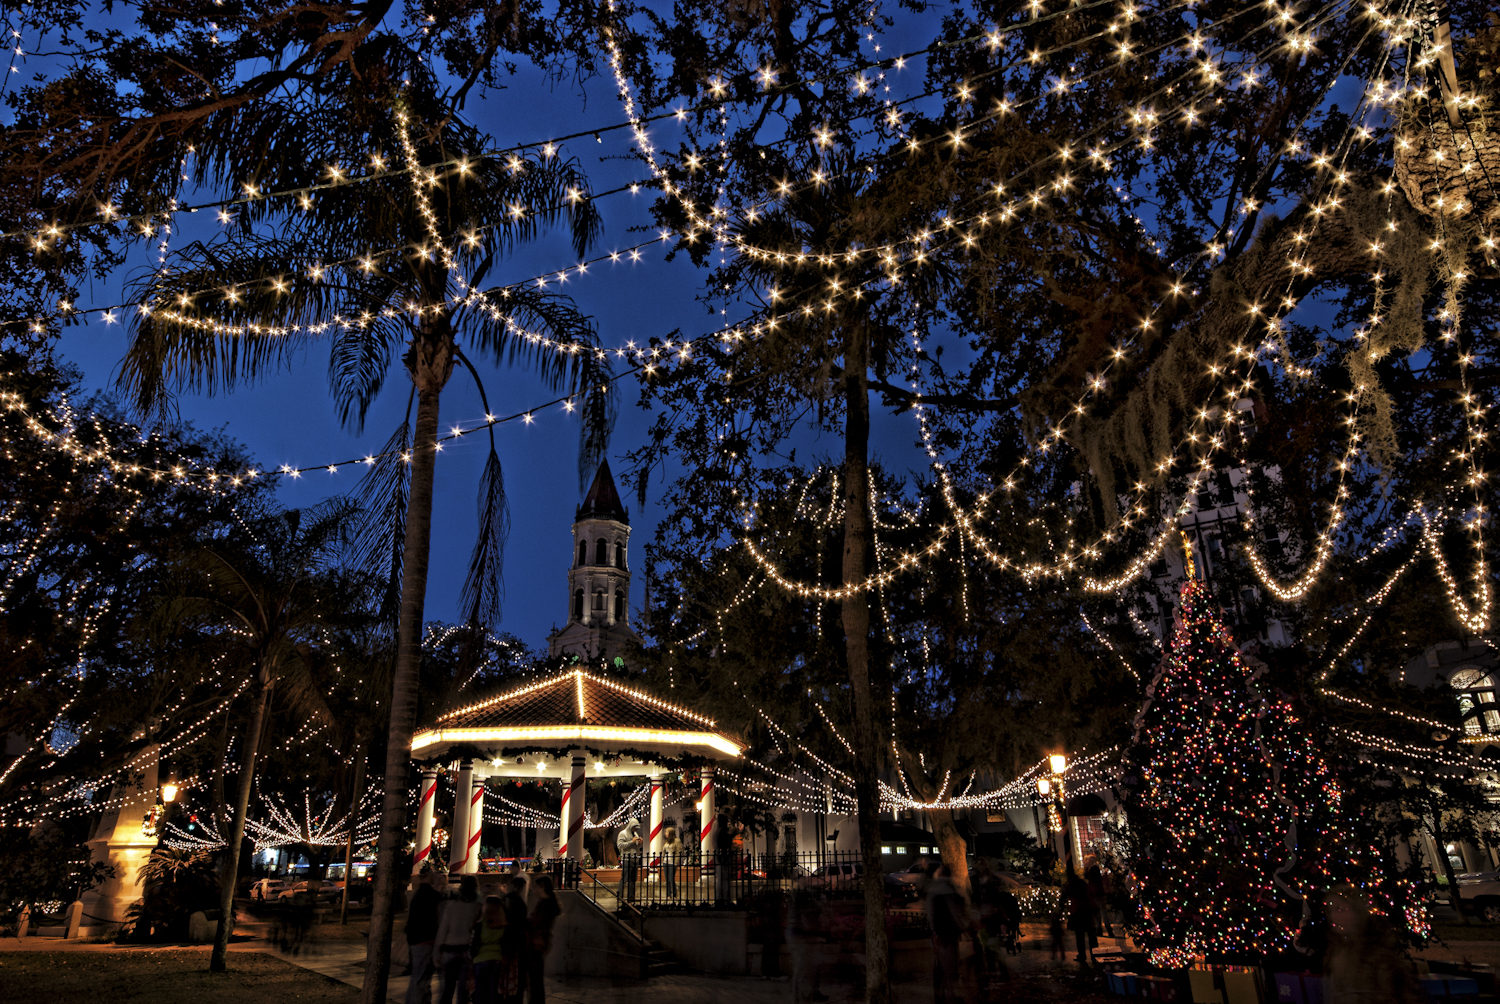 St.Augustine Festival of Lights, Florida